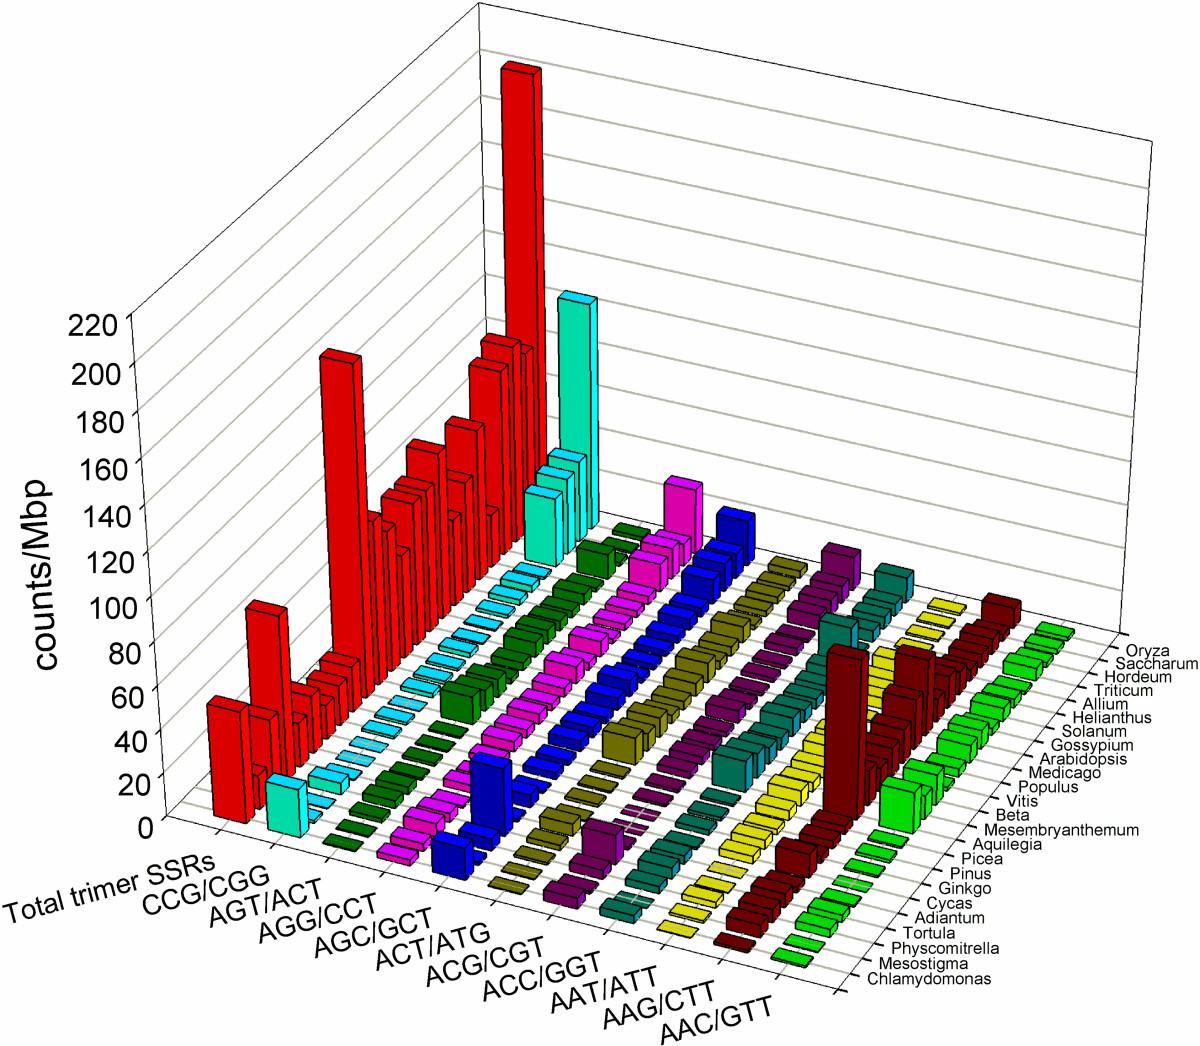 https://static-content.springer.com/image/art%3A10.1186%2F1471-2229-6-9/MediaObjects/12870_2005_Article_117_Fig6_HTML.jpg